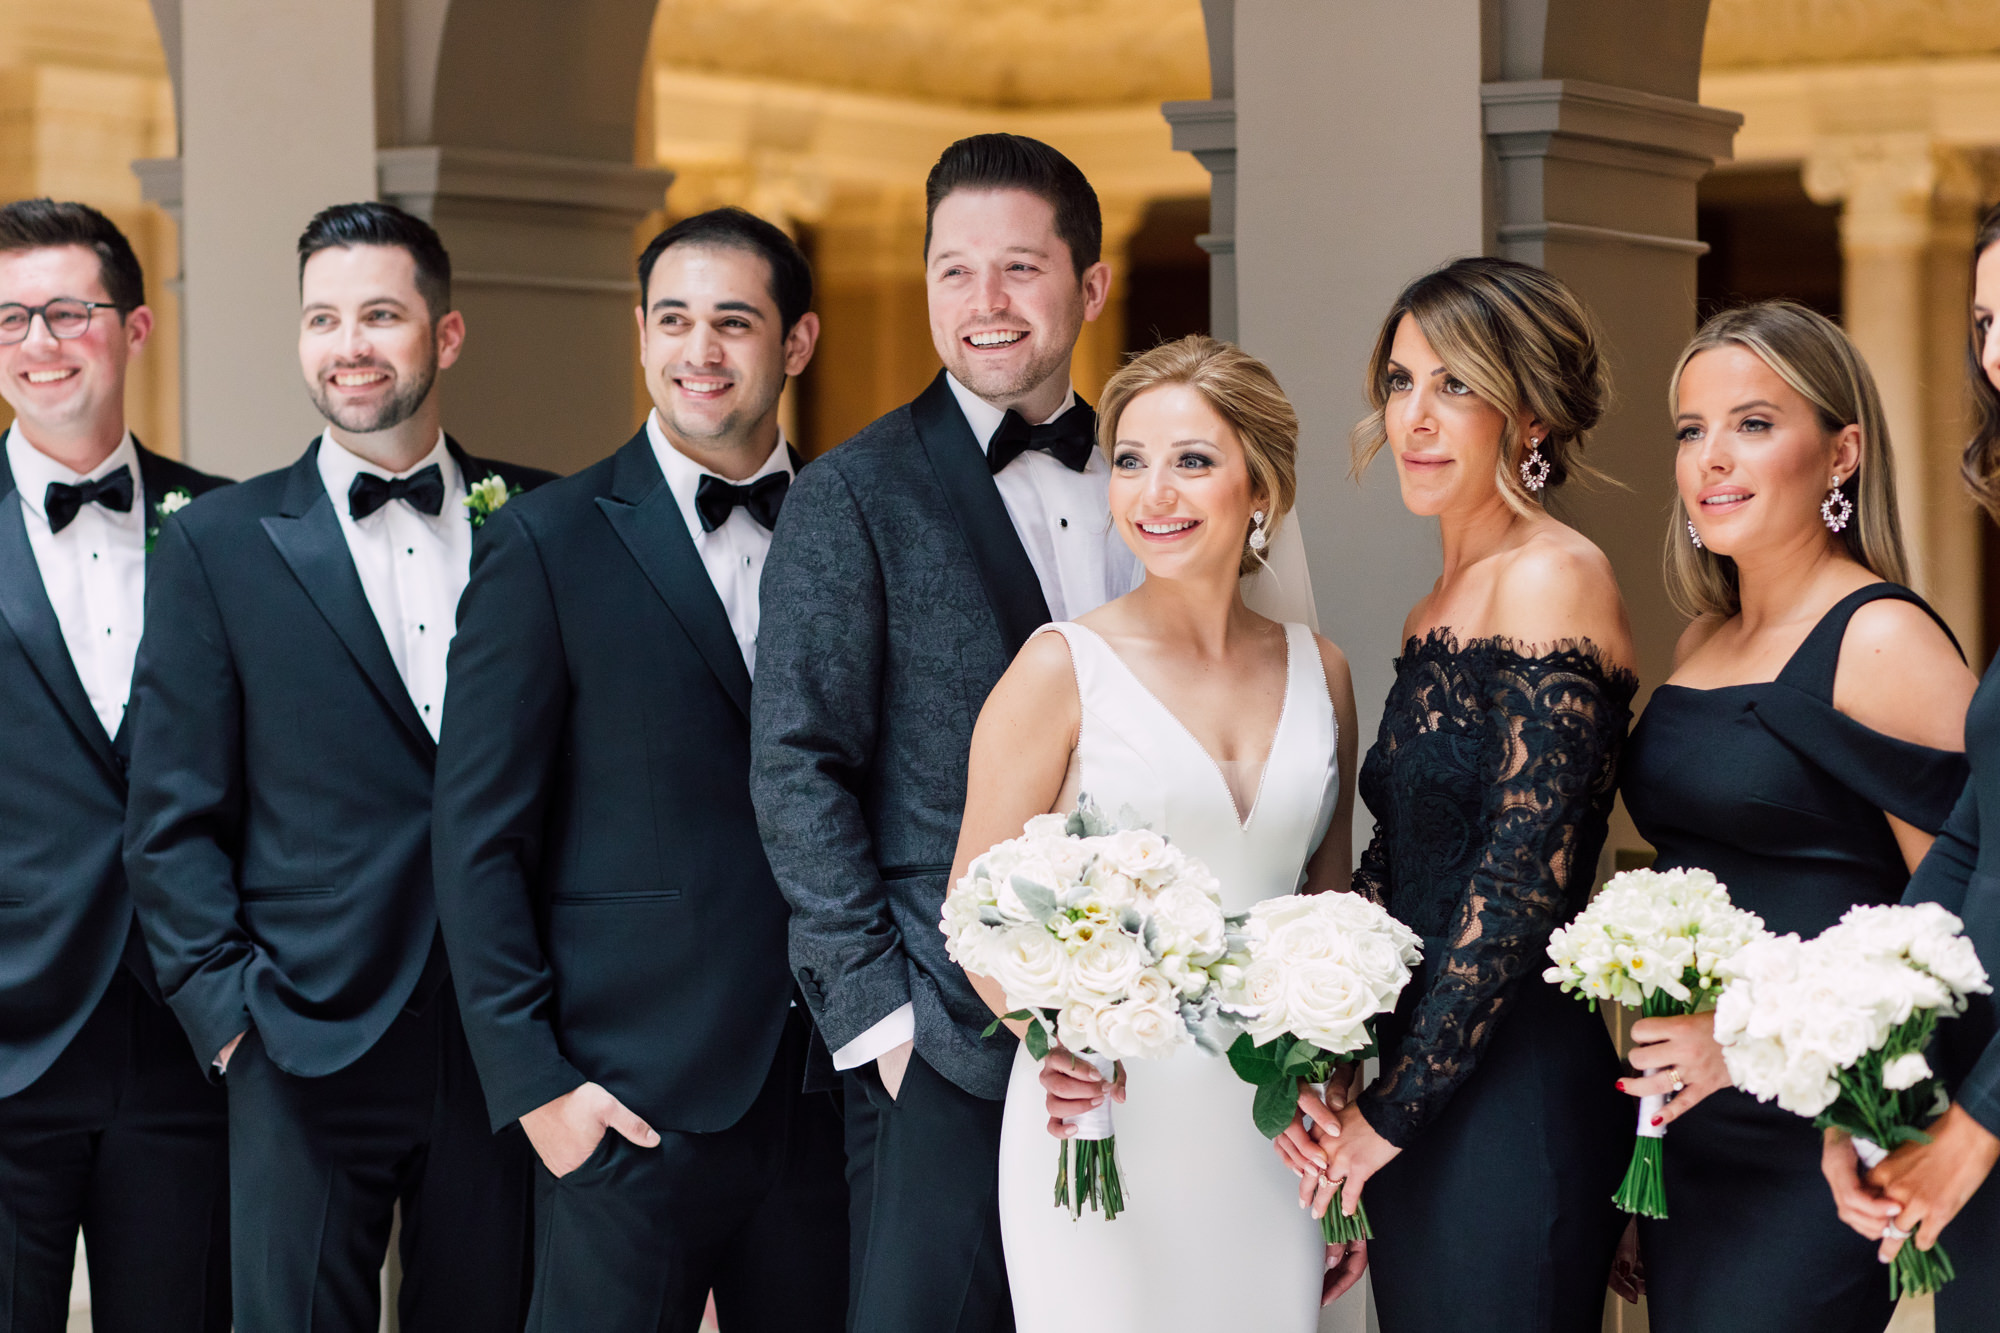 bridal party tuxedo black